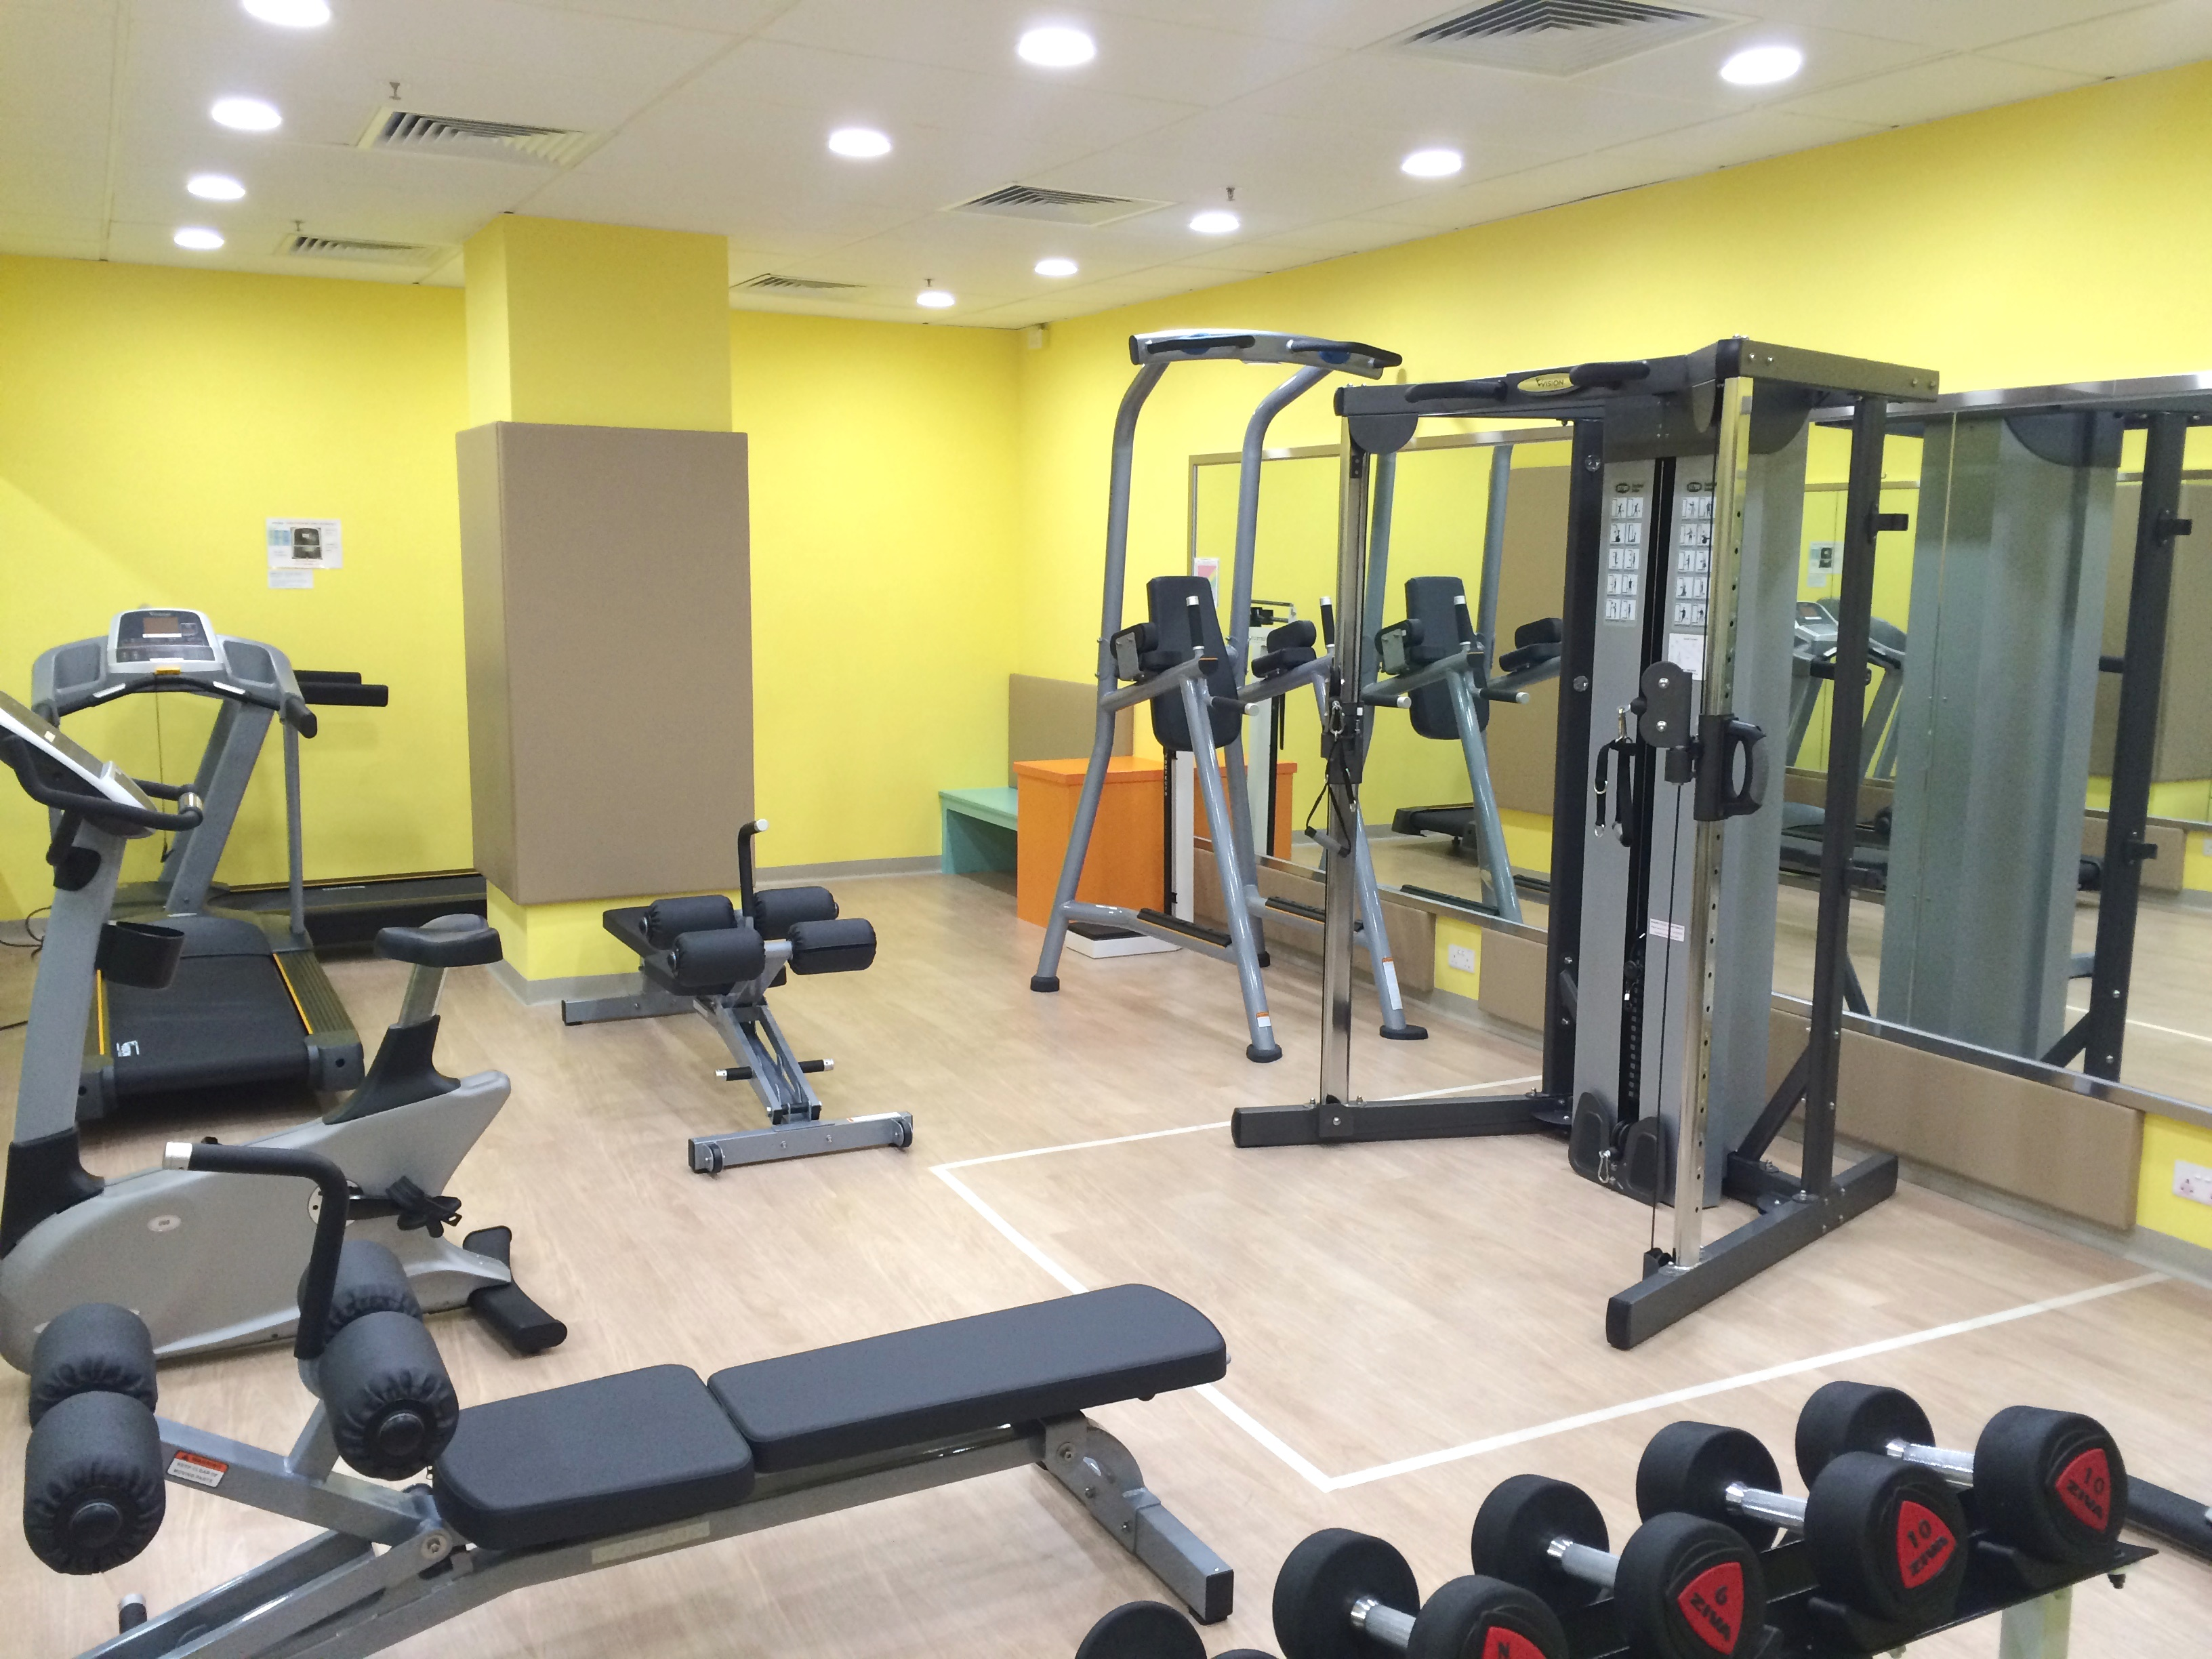 The open university of hong kong fitness room